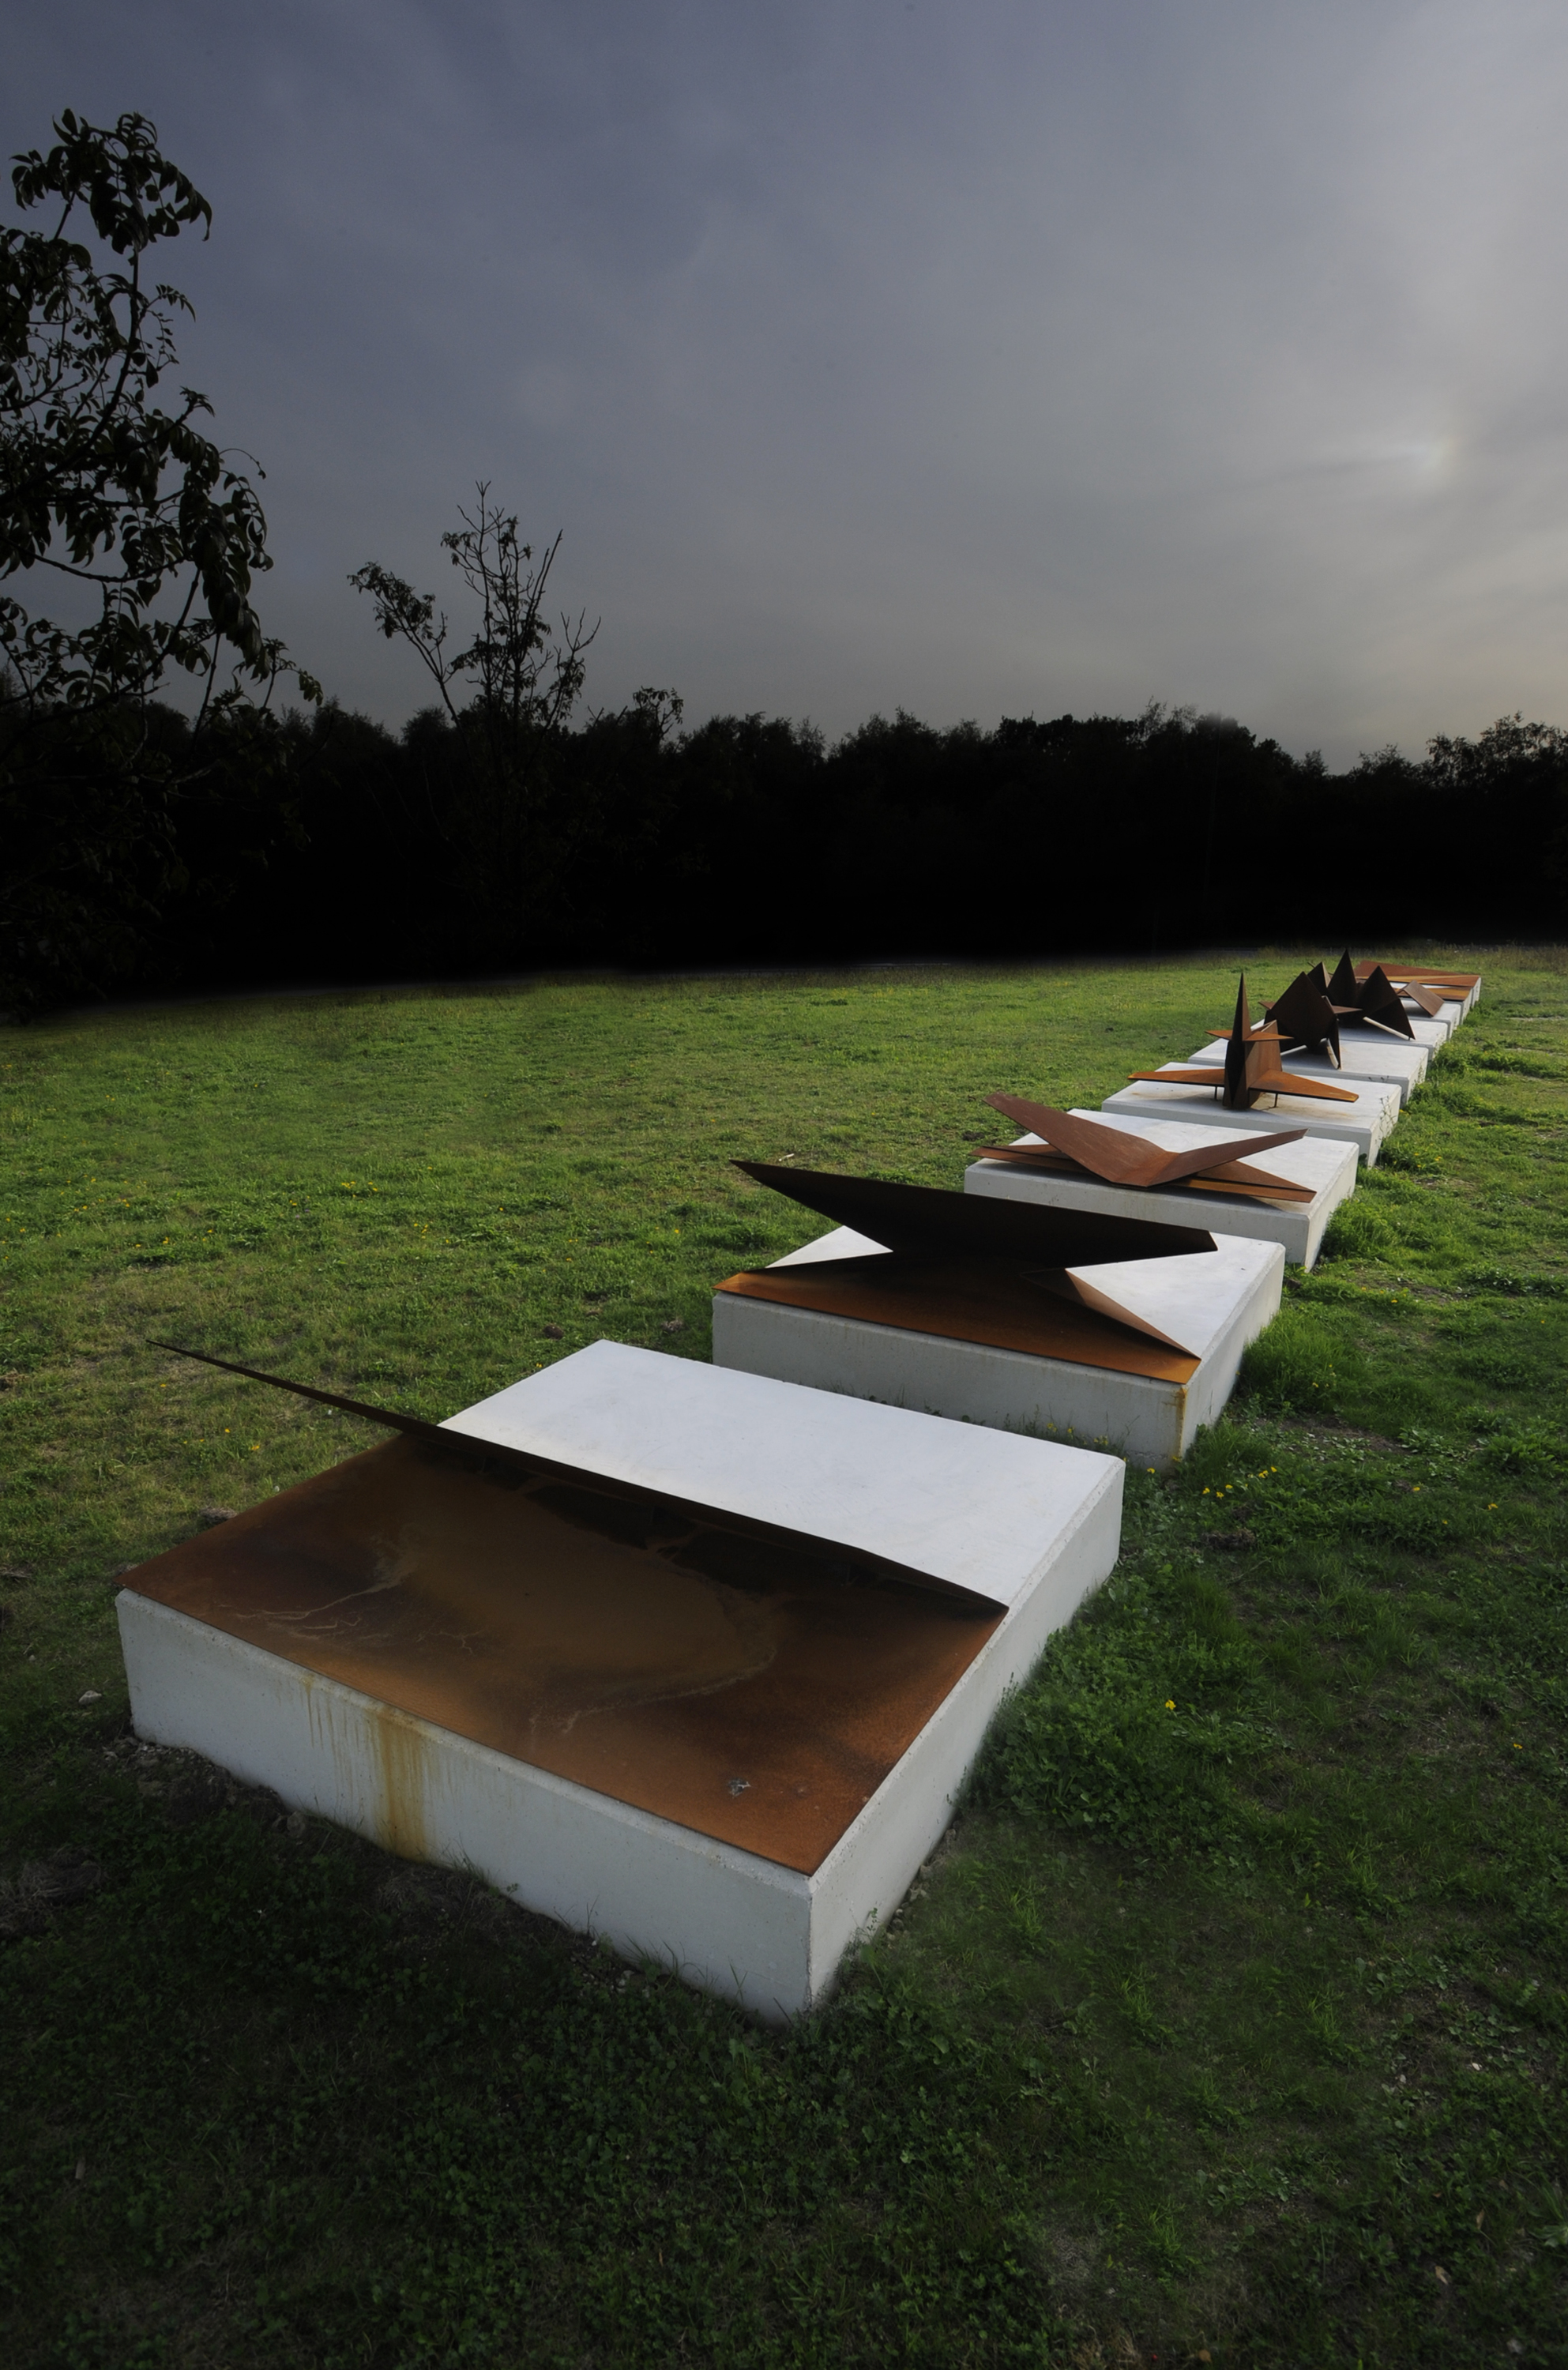 CHANGES detail, corten steel, recycled concrete from the former RAF airfield Greenham Common, 1,55 x 2,00 x 24,00 m photo Leigh Quinnell